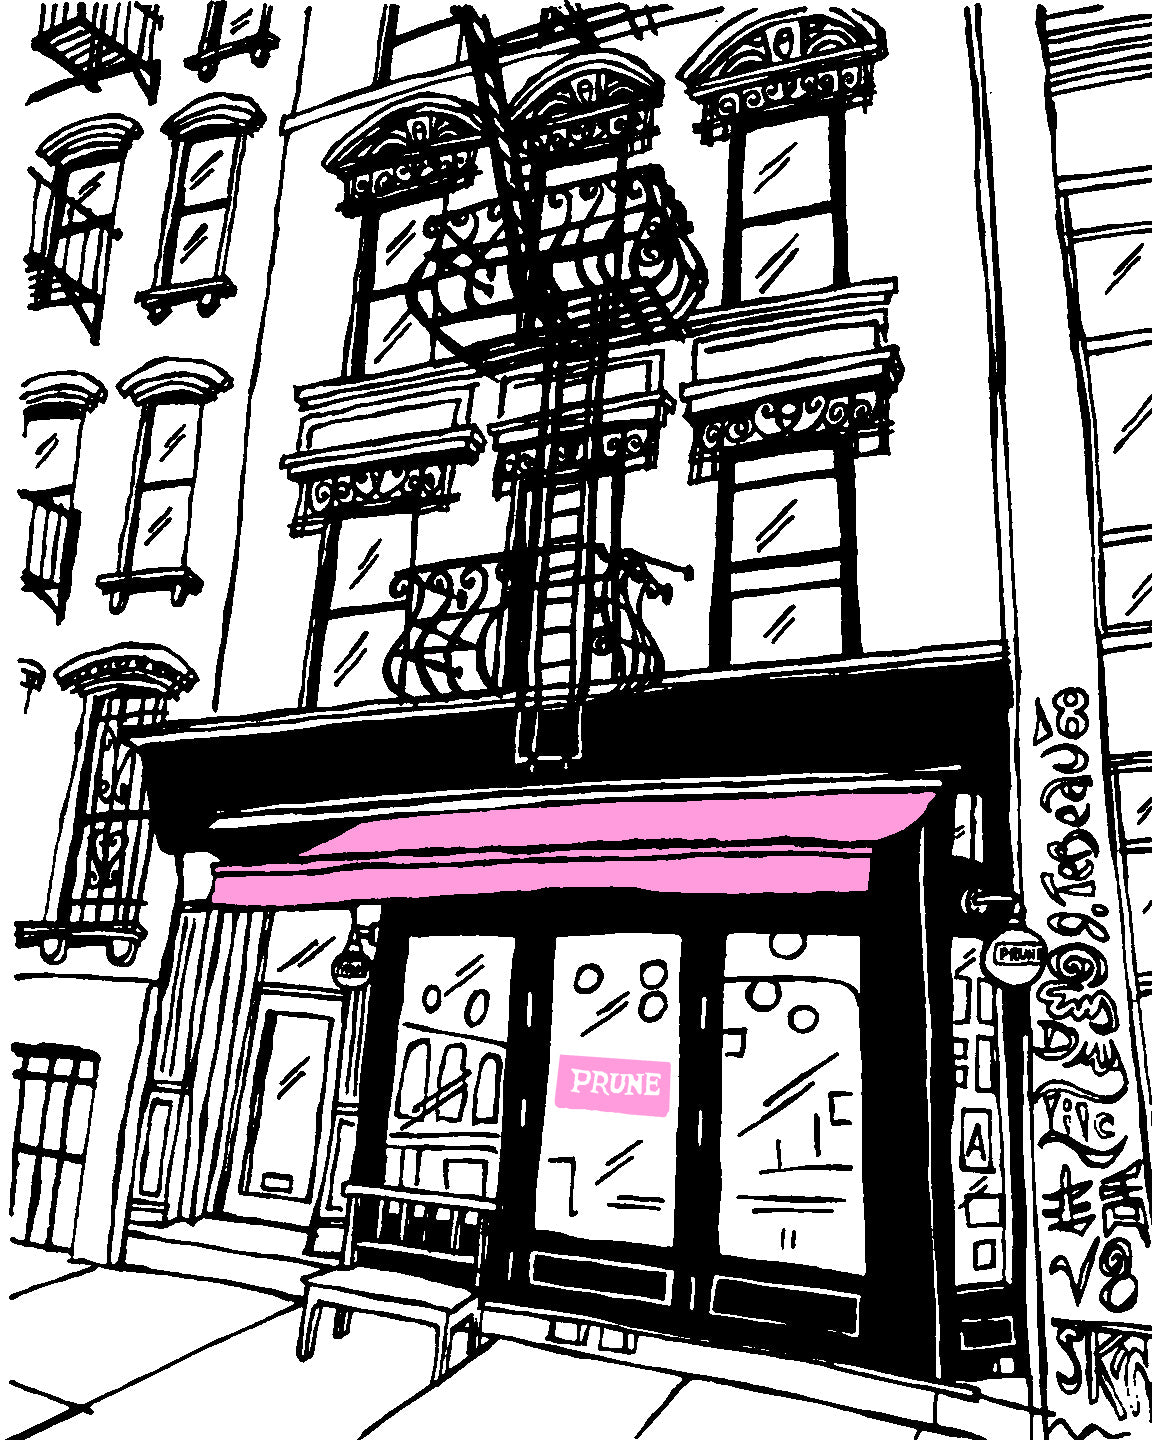 Prune restaurant of New York City signed prints. (ships free in the US)